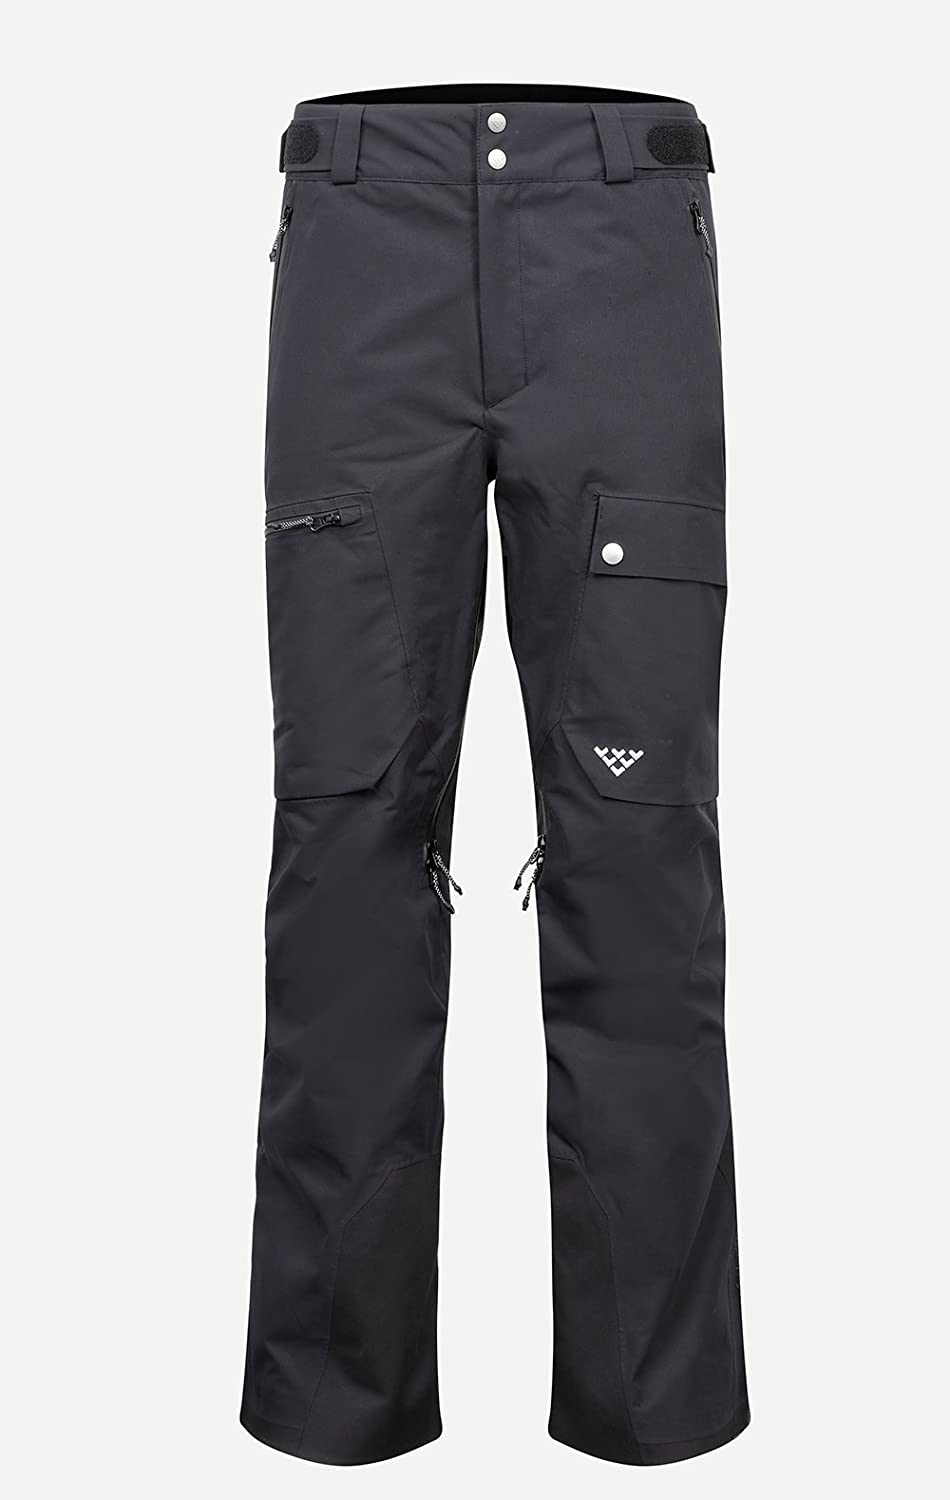 Schwarz Crows Corpus Insulated Gore Tex Pant schwarz 18 19